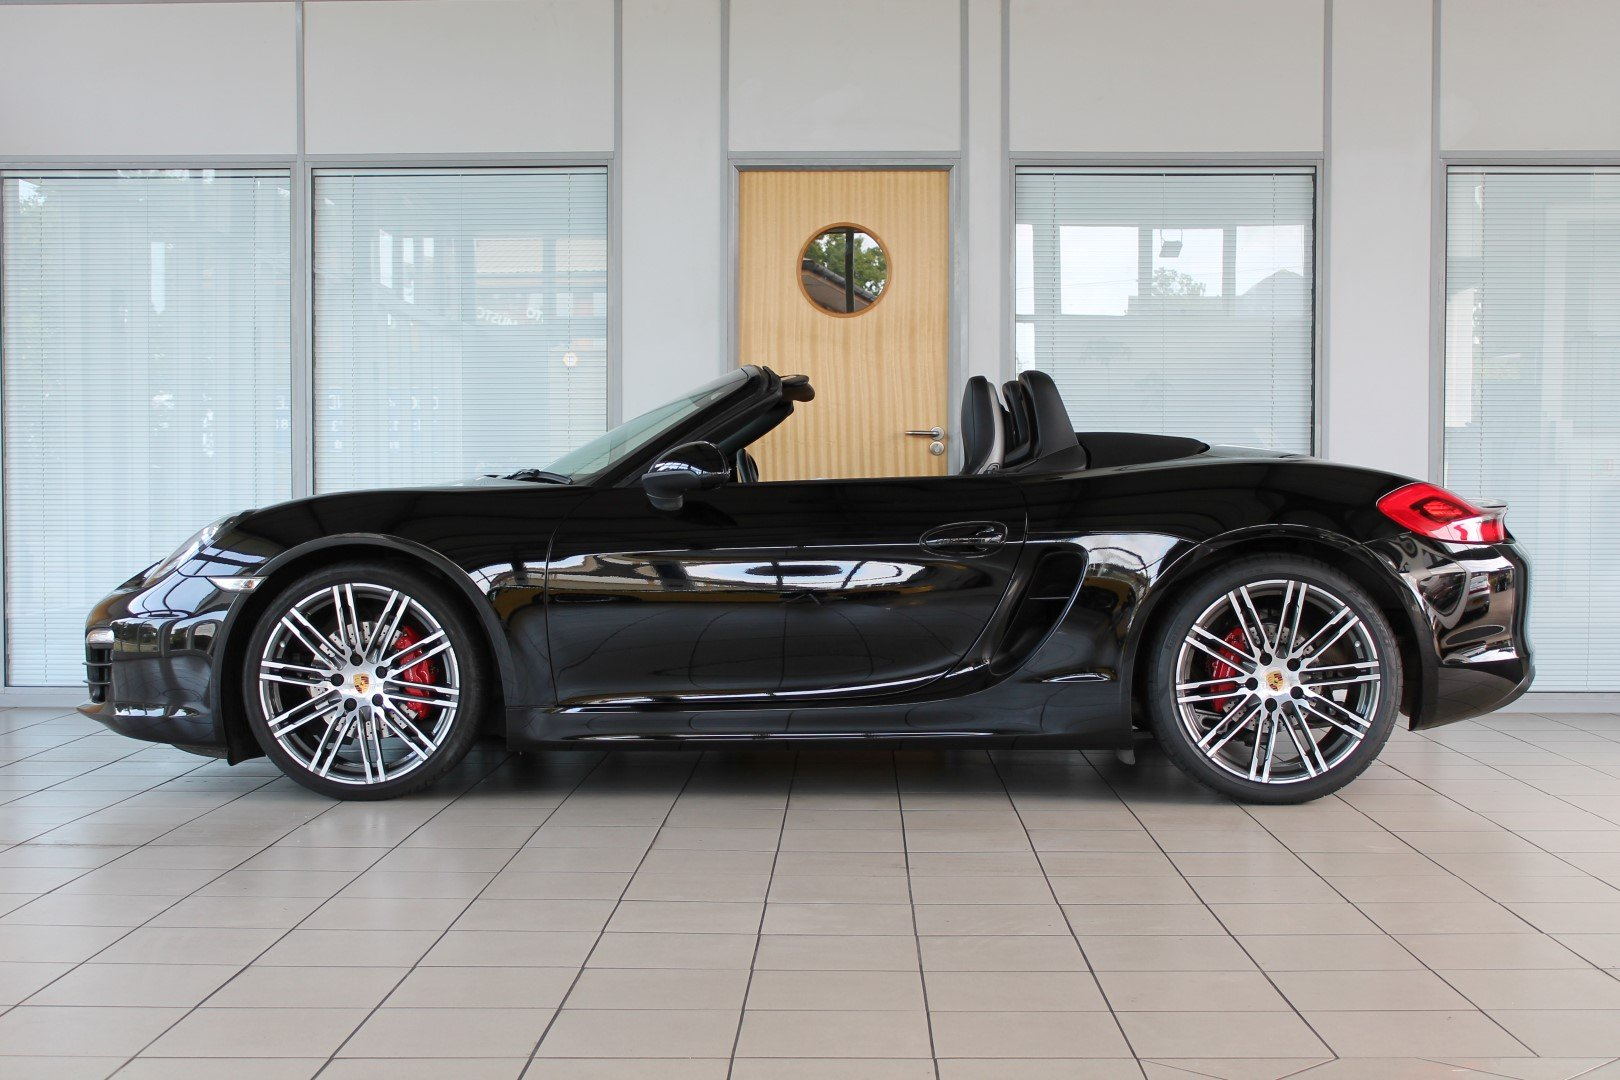 2015 Boxster (981) S 3.4 PDK For Sale (picture 2 of 6)